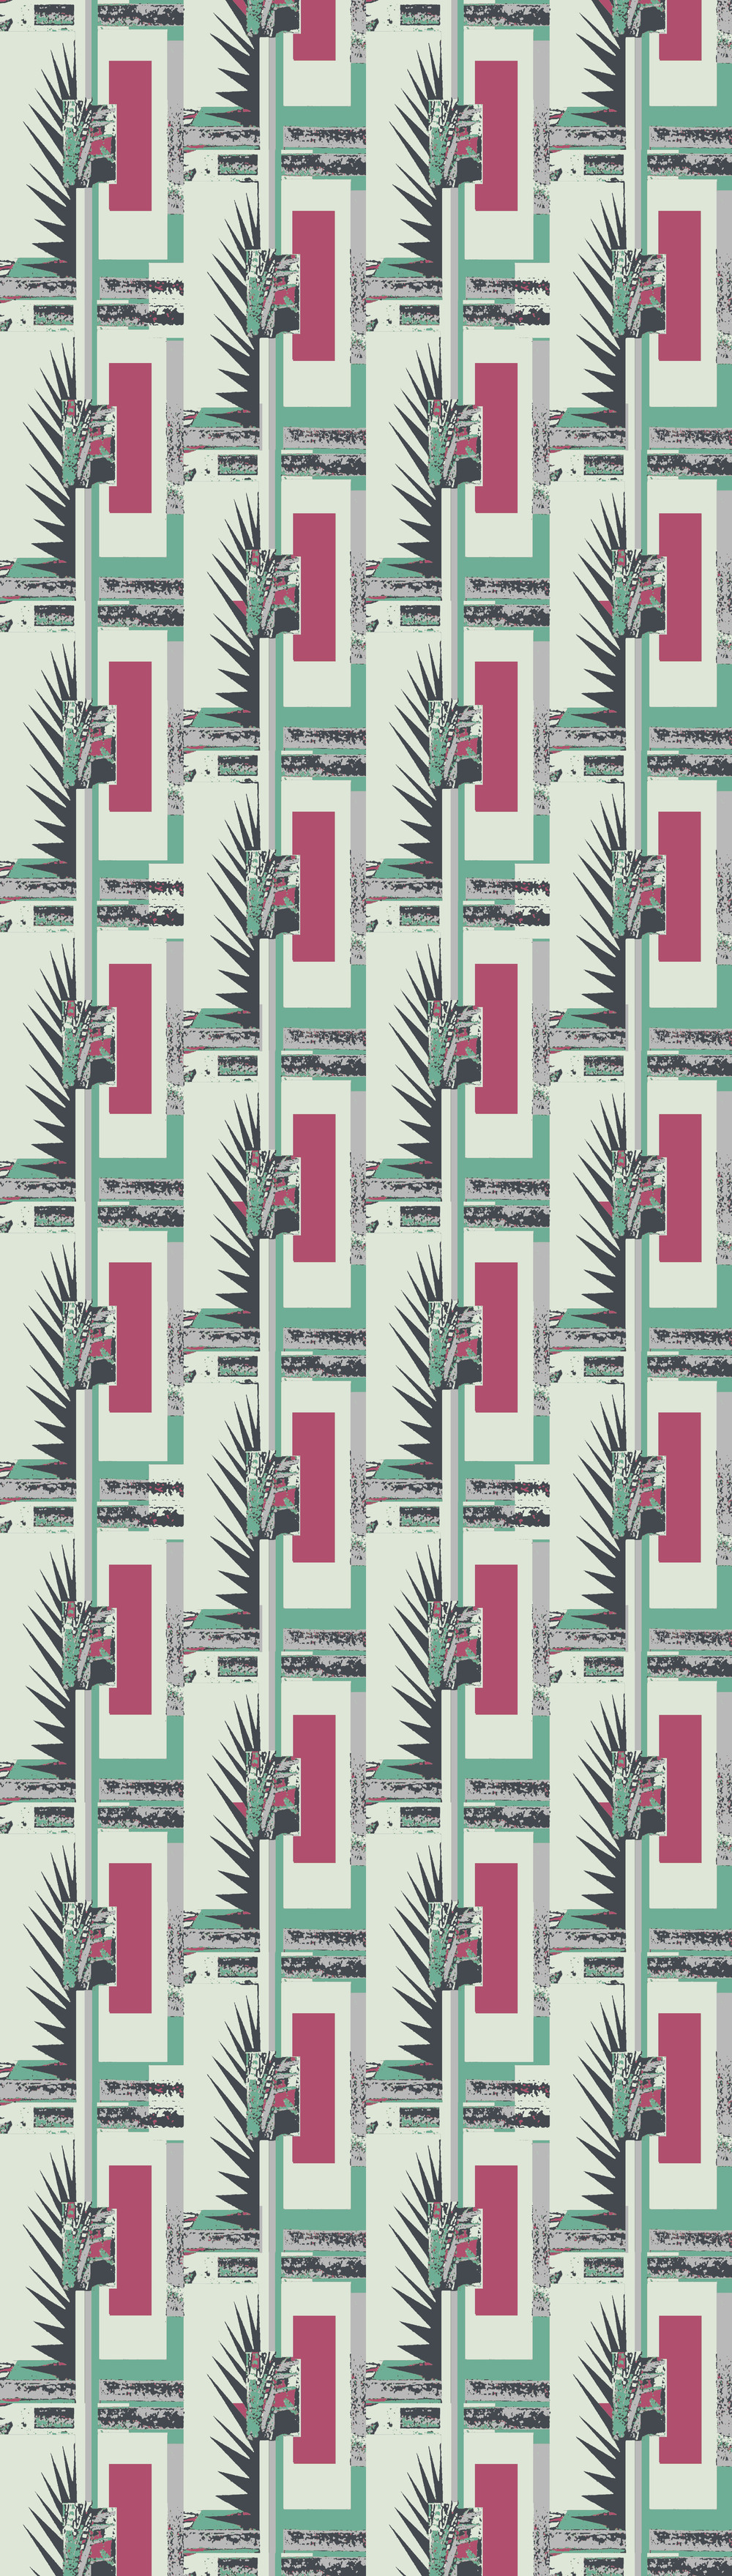 Palm wallpaper sample pink.jpg